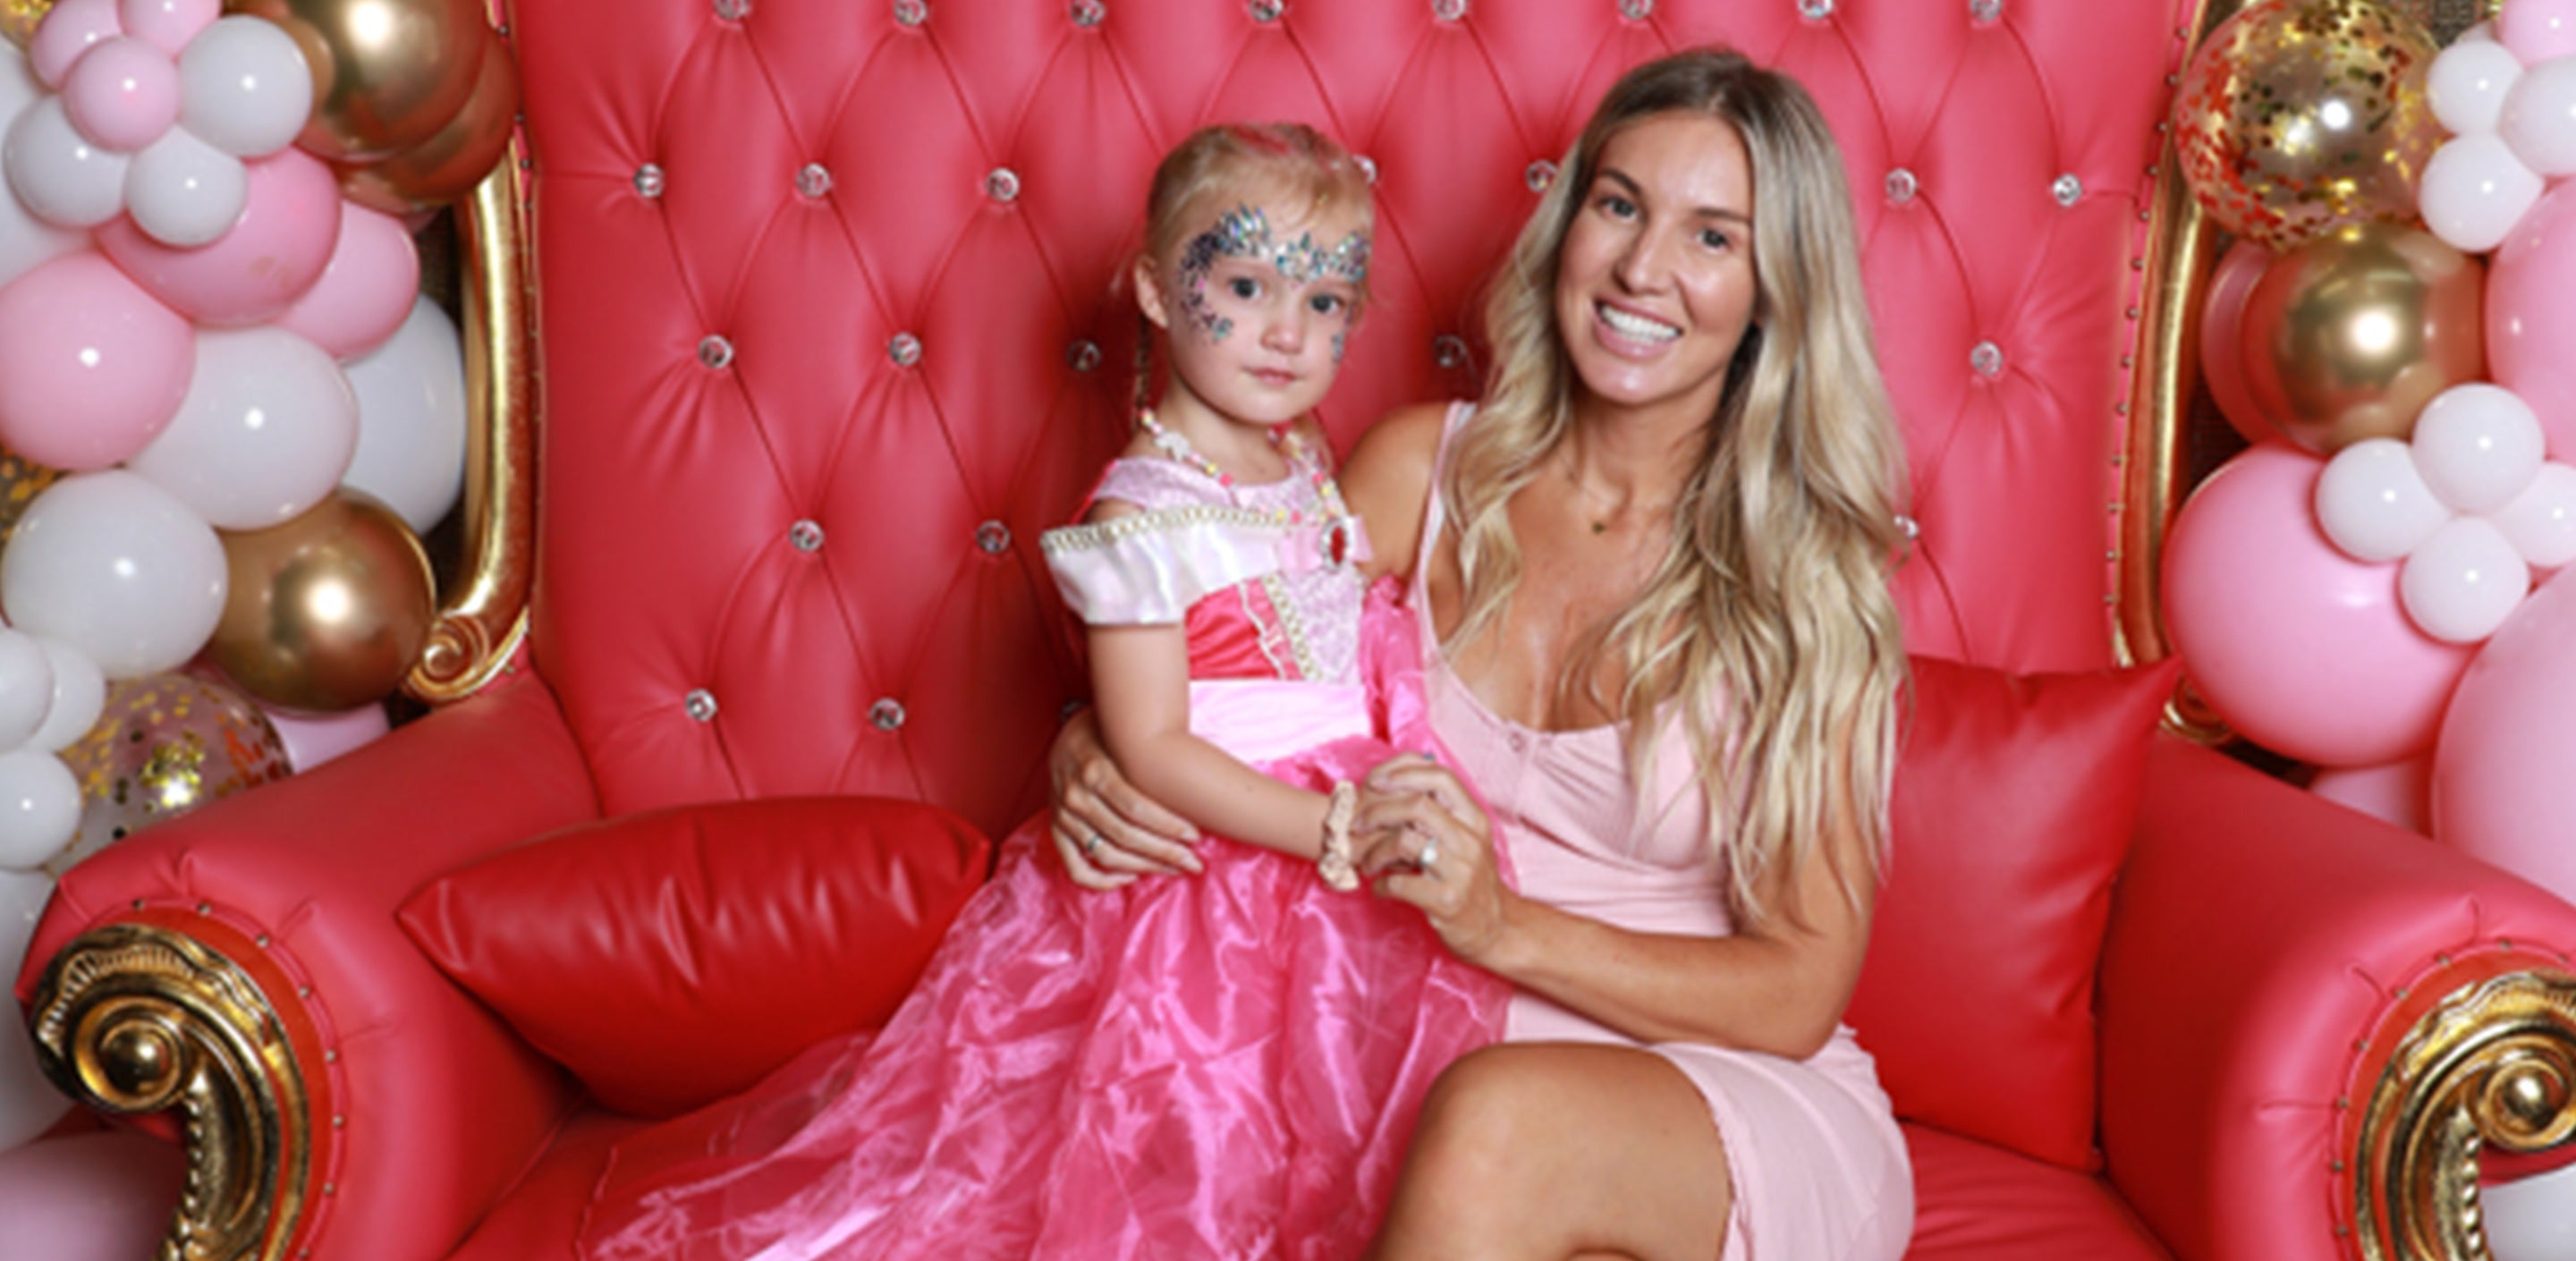 Mummy and Me Treatment room at Burleigh - pamper packages for mother and daughter - gold coast day spa for kids